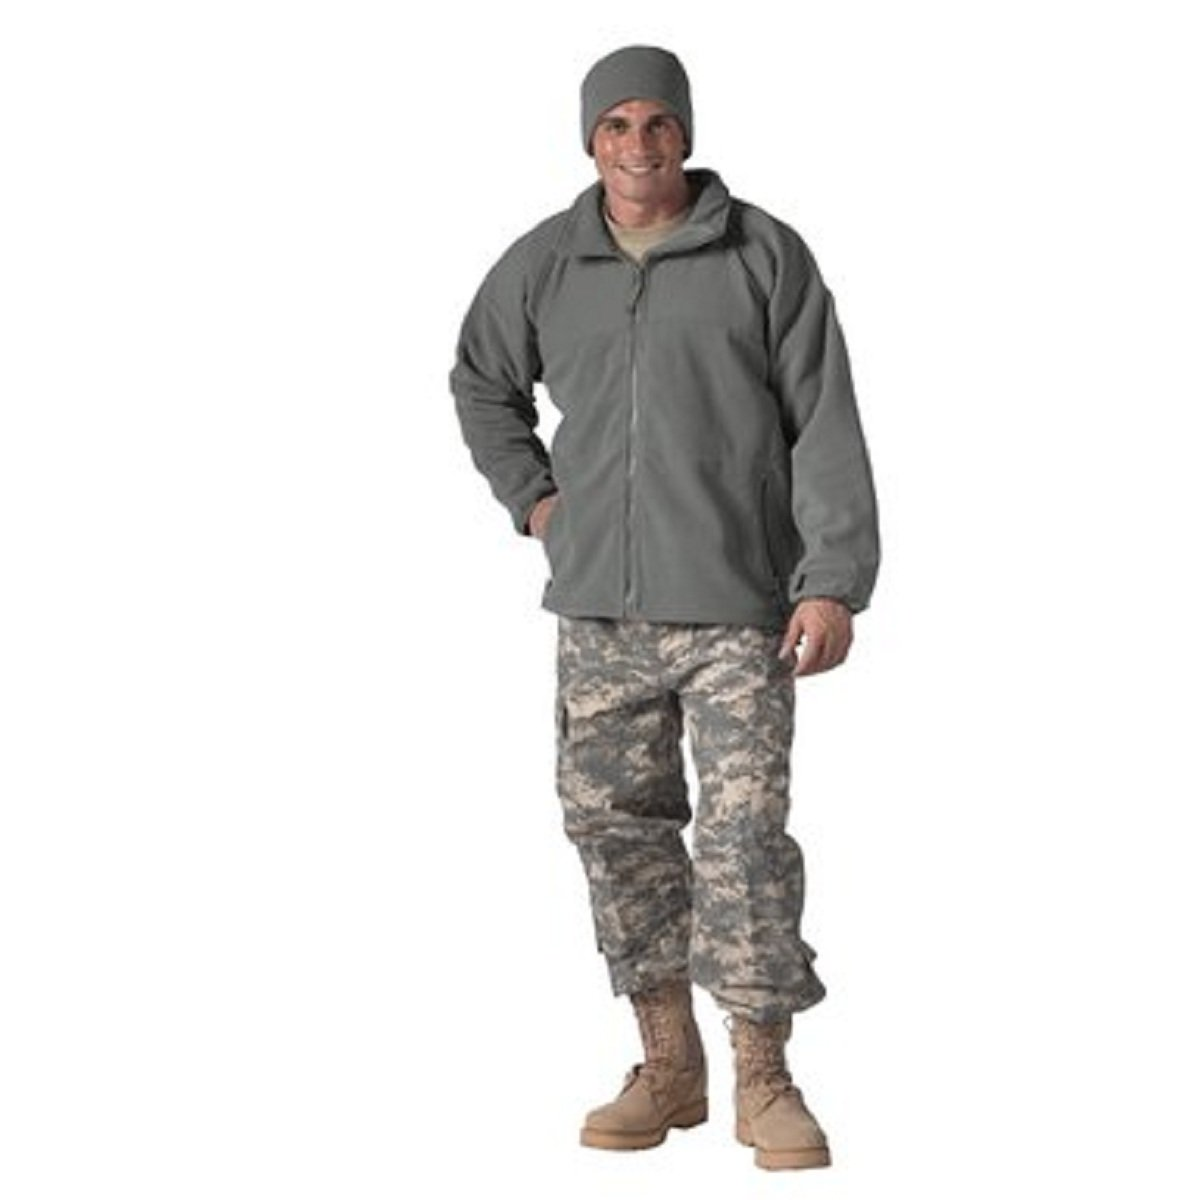 Rothco Military ECWCS Polar Fleece Jacket/Liner, Foliage Green - X Large R9778